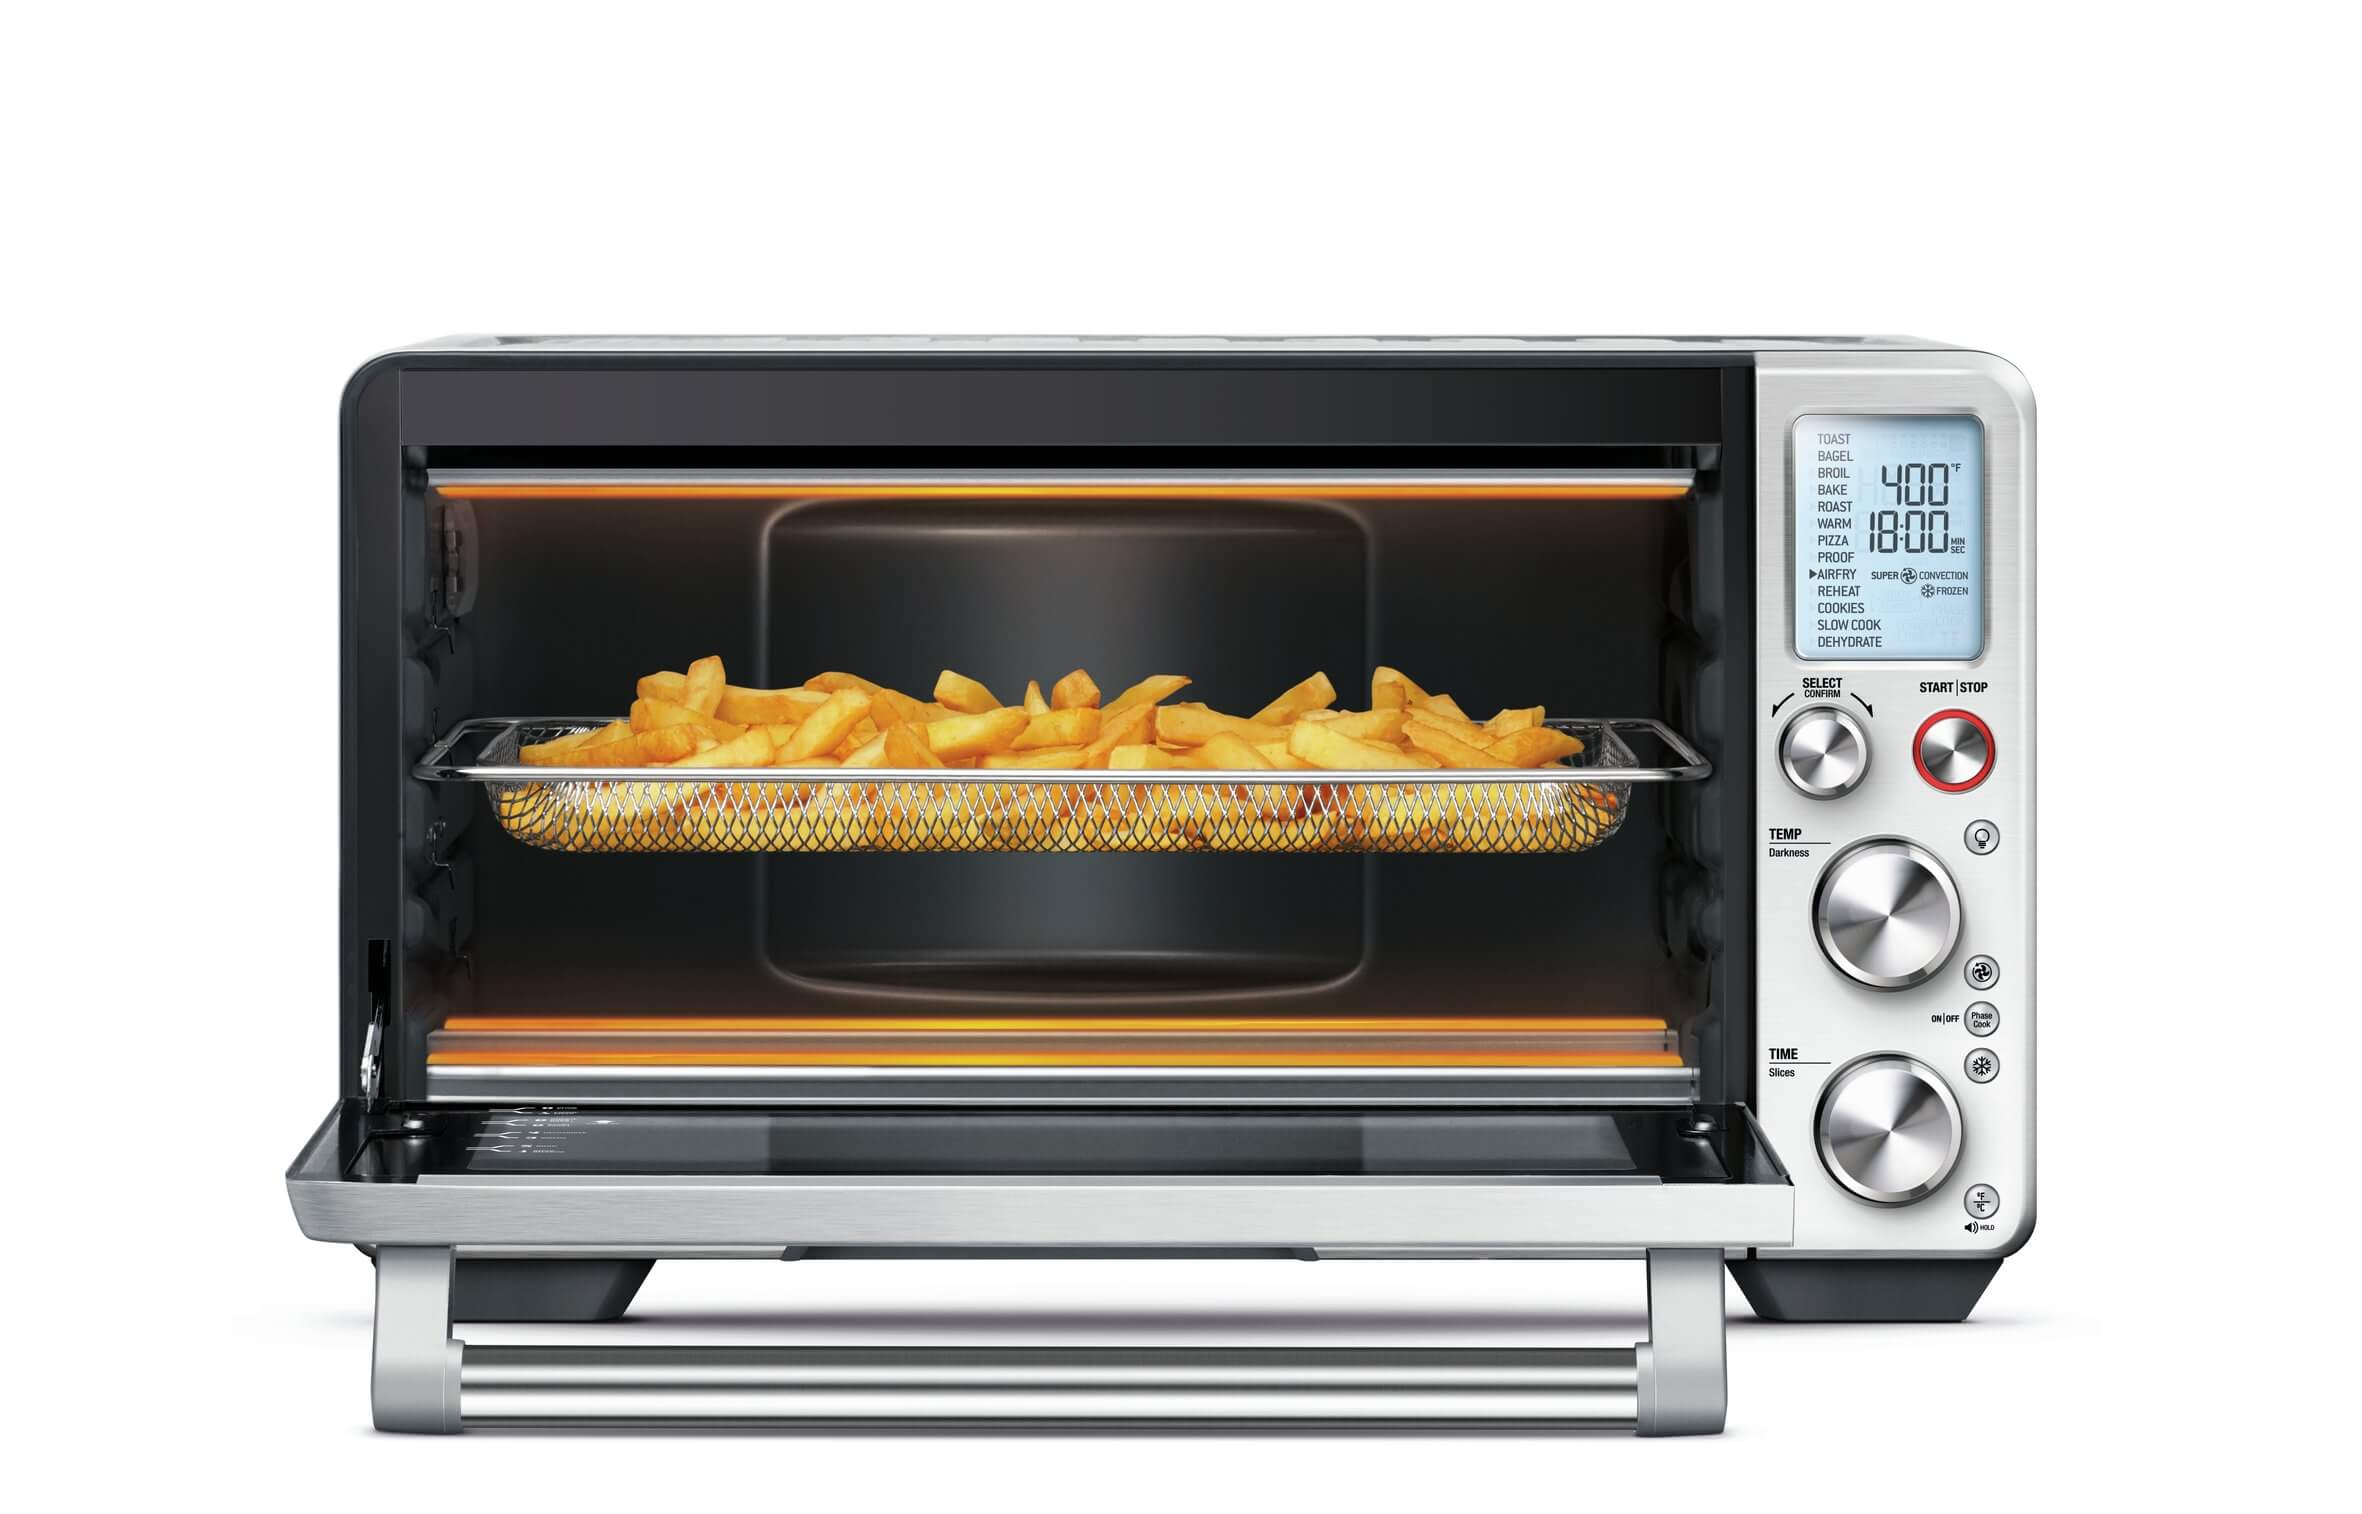 Breville BOV900BSS Convection and Air Fryer, breville air fryer, breville smart air oven, breville smart fryer, Best commercial air fryer, best air fryer